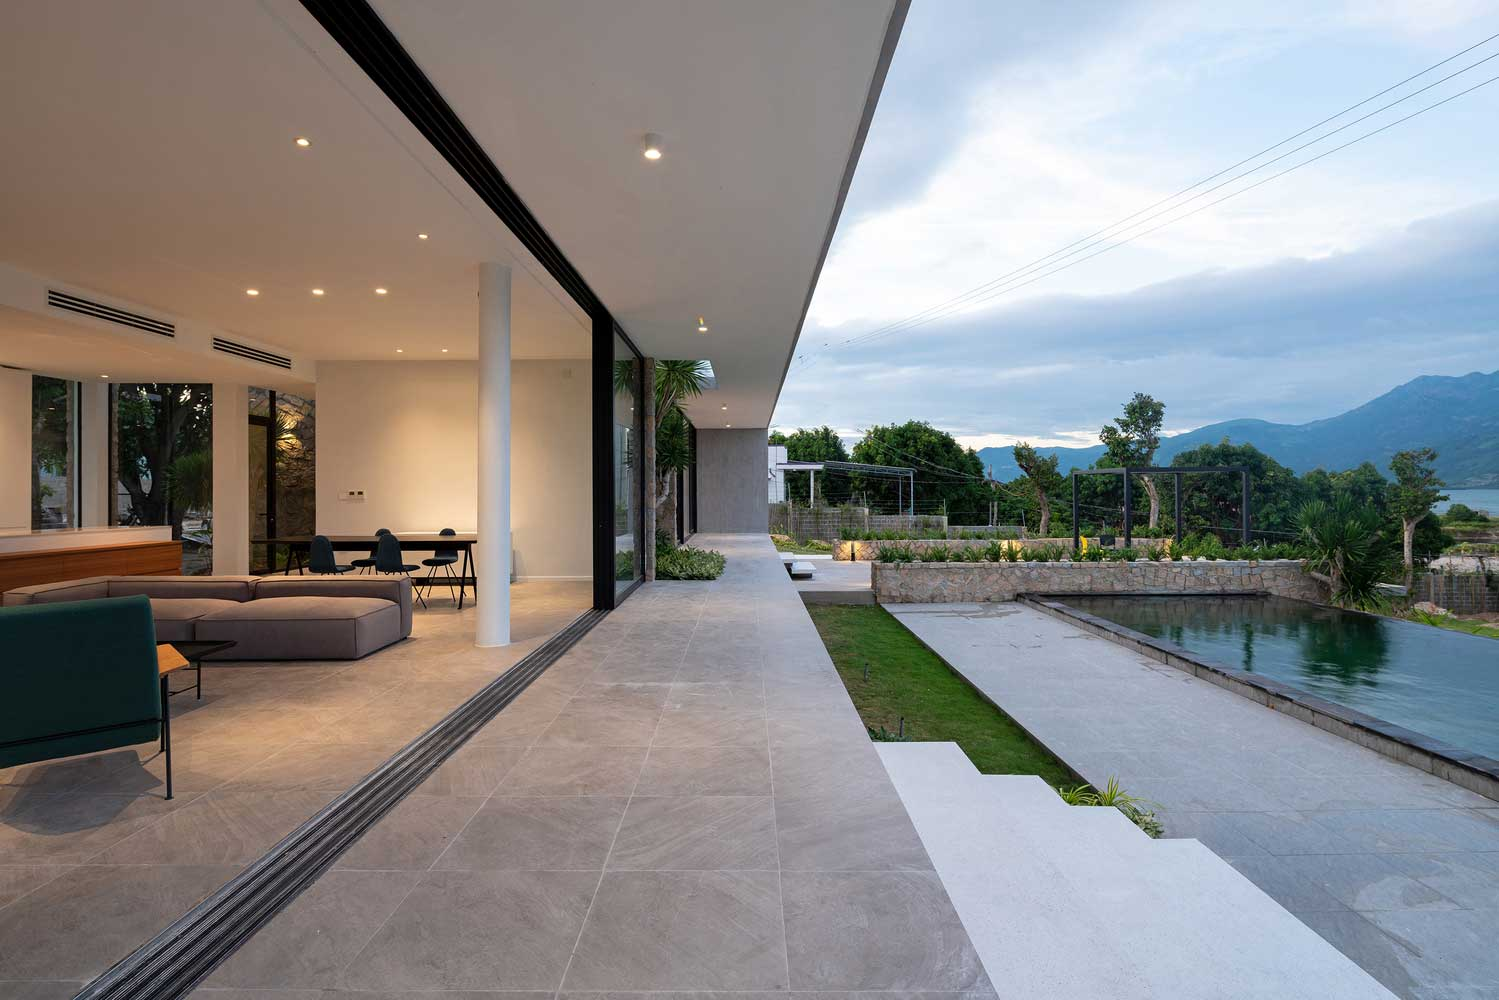 One-storey flat house with panoramic windows on the Vietnamese slope